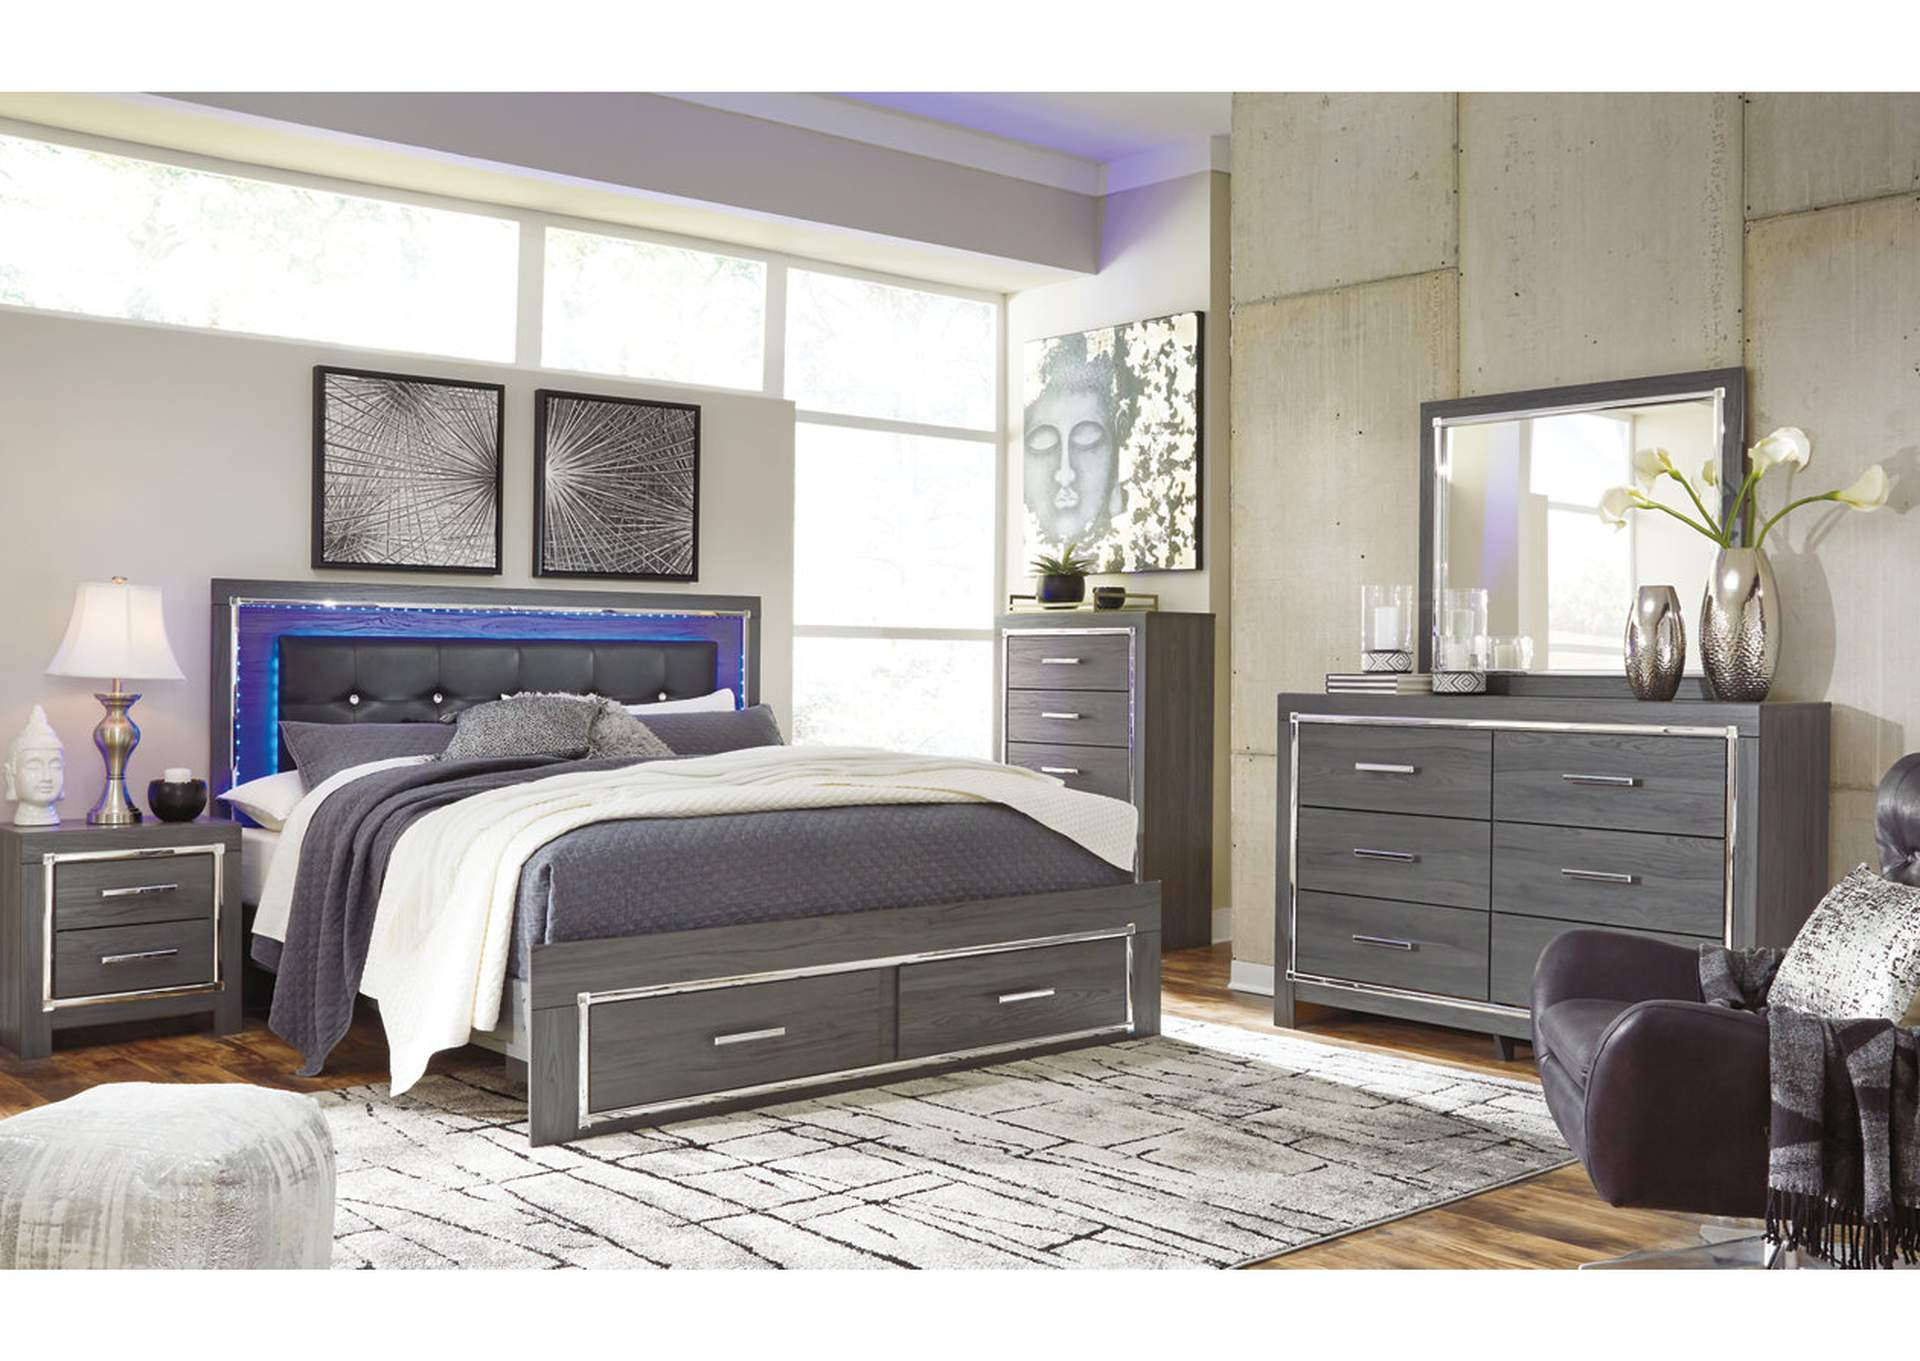 Lodanna Full Panel Bed with 2 Storage Drawers, Dresser and Mirror,Signature Design By Ashley